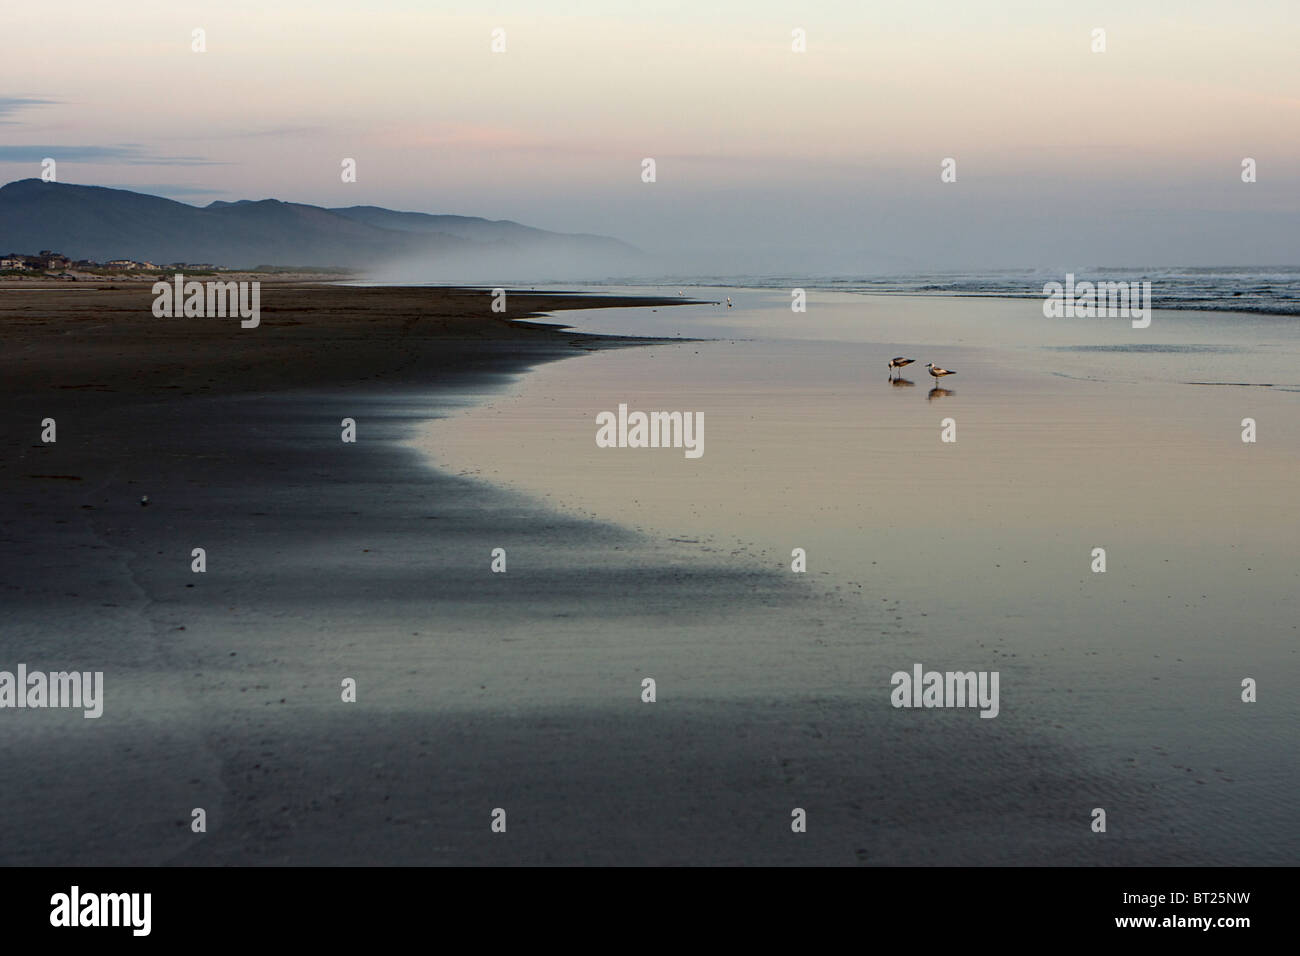 Sandpipers looking for insects on the beach at dusk. - Stock Image